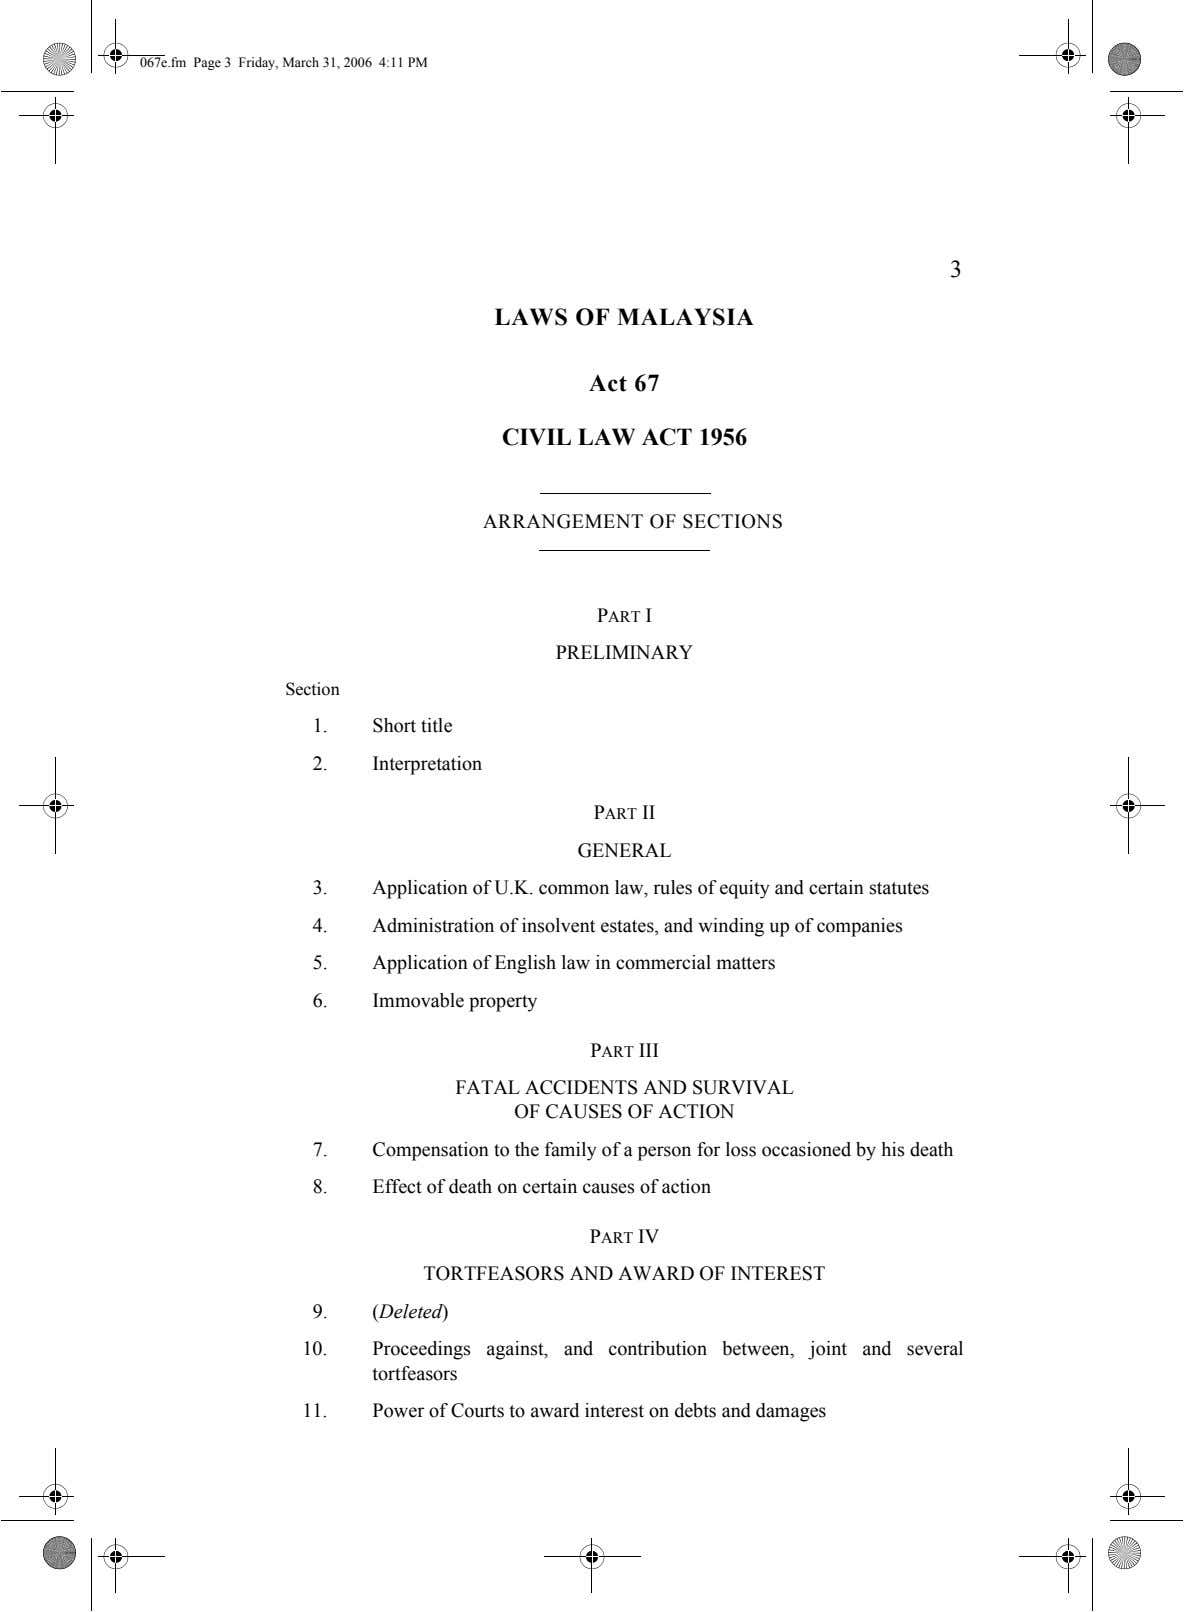 067e.fm Page 3 Friday, March 31, 2006 4:11 PM 3 LAWS OF MALAYSIA Act 67